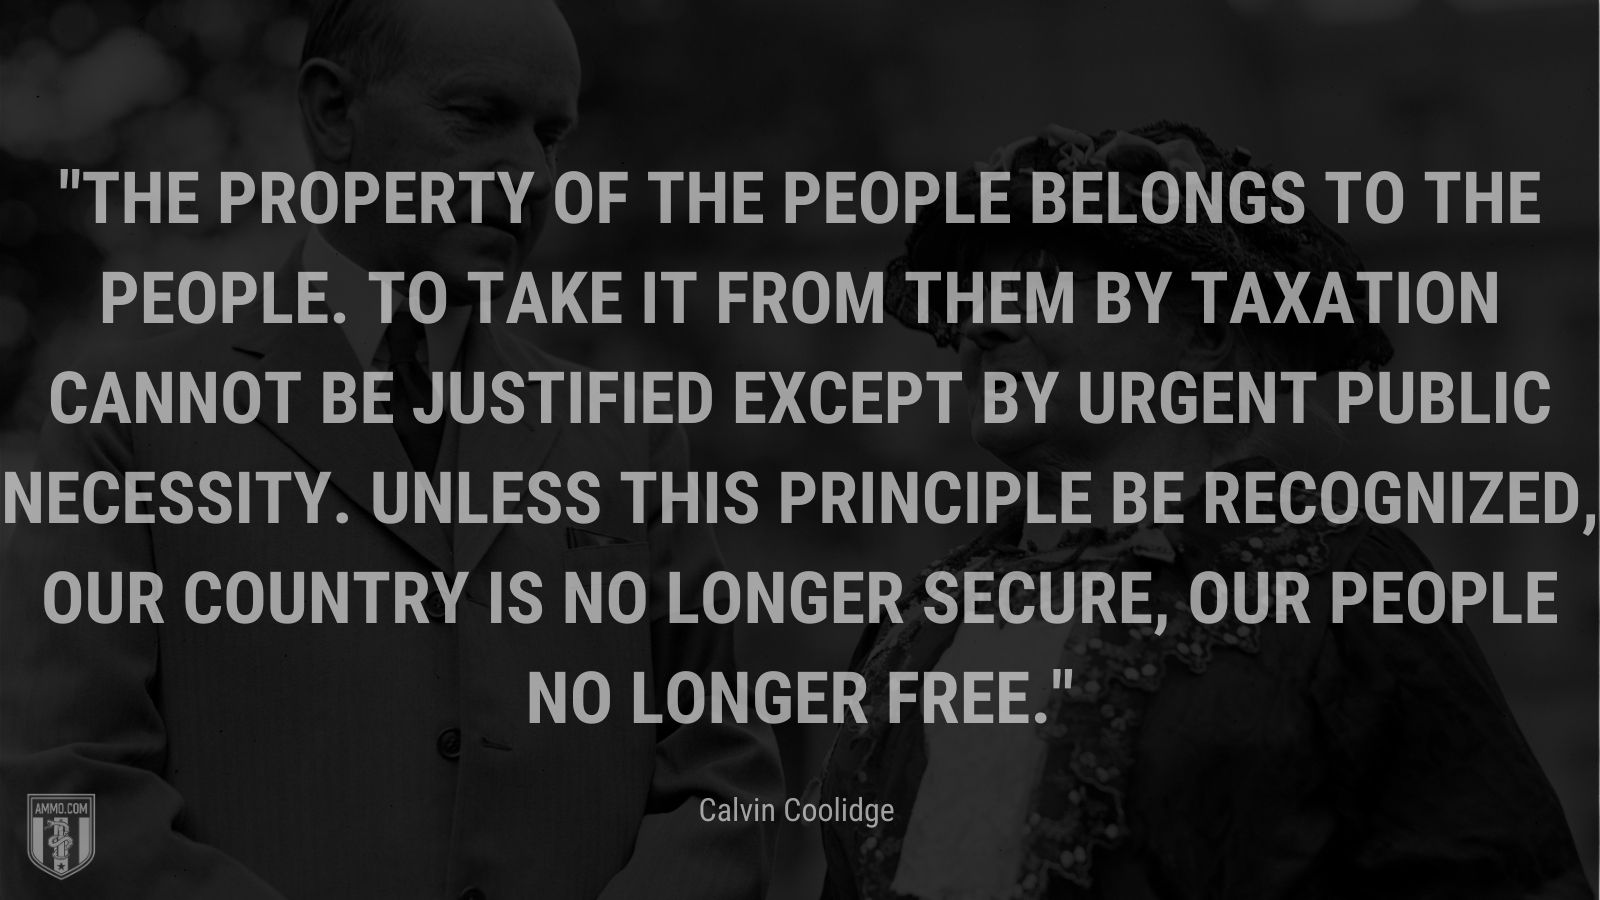 """""""The property of the people belongs to the people. To take it from them by taxation cannot be justified except by urgent public necessity. Unless this principle be recognized, our country is no longer secure, our people no longer free."""" - Calvin Coolidge"""